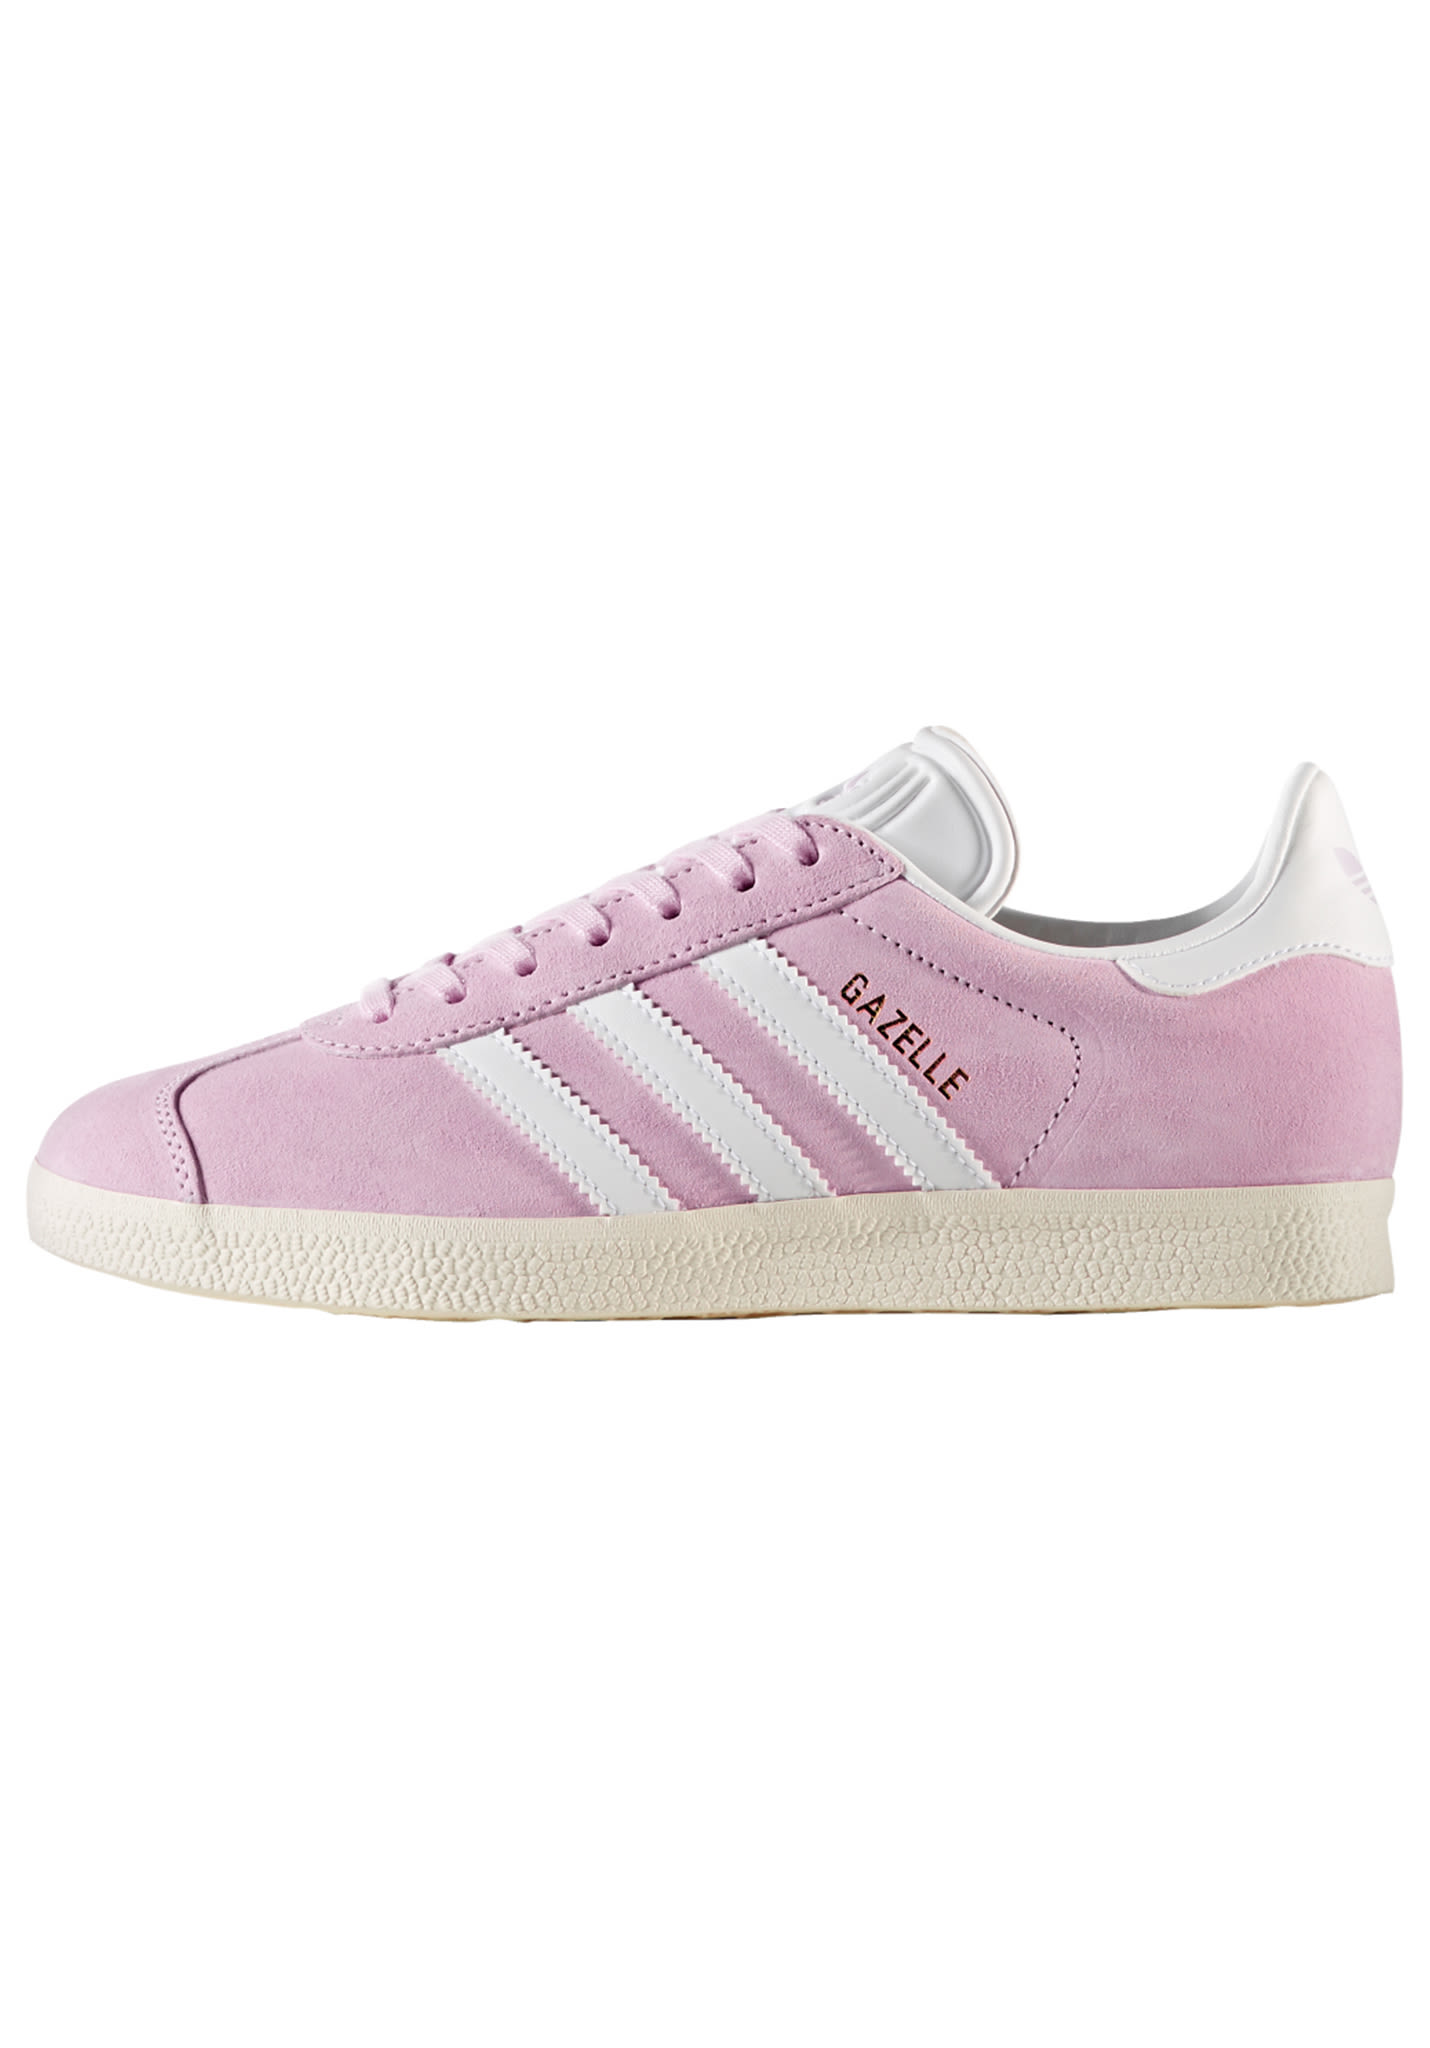 02392cd61741e2 adidas Originals Gazelle - Sneaker für Damen - Pink - Planet Sports